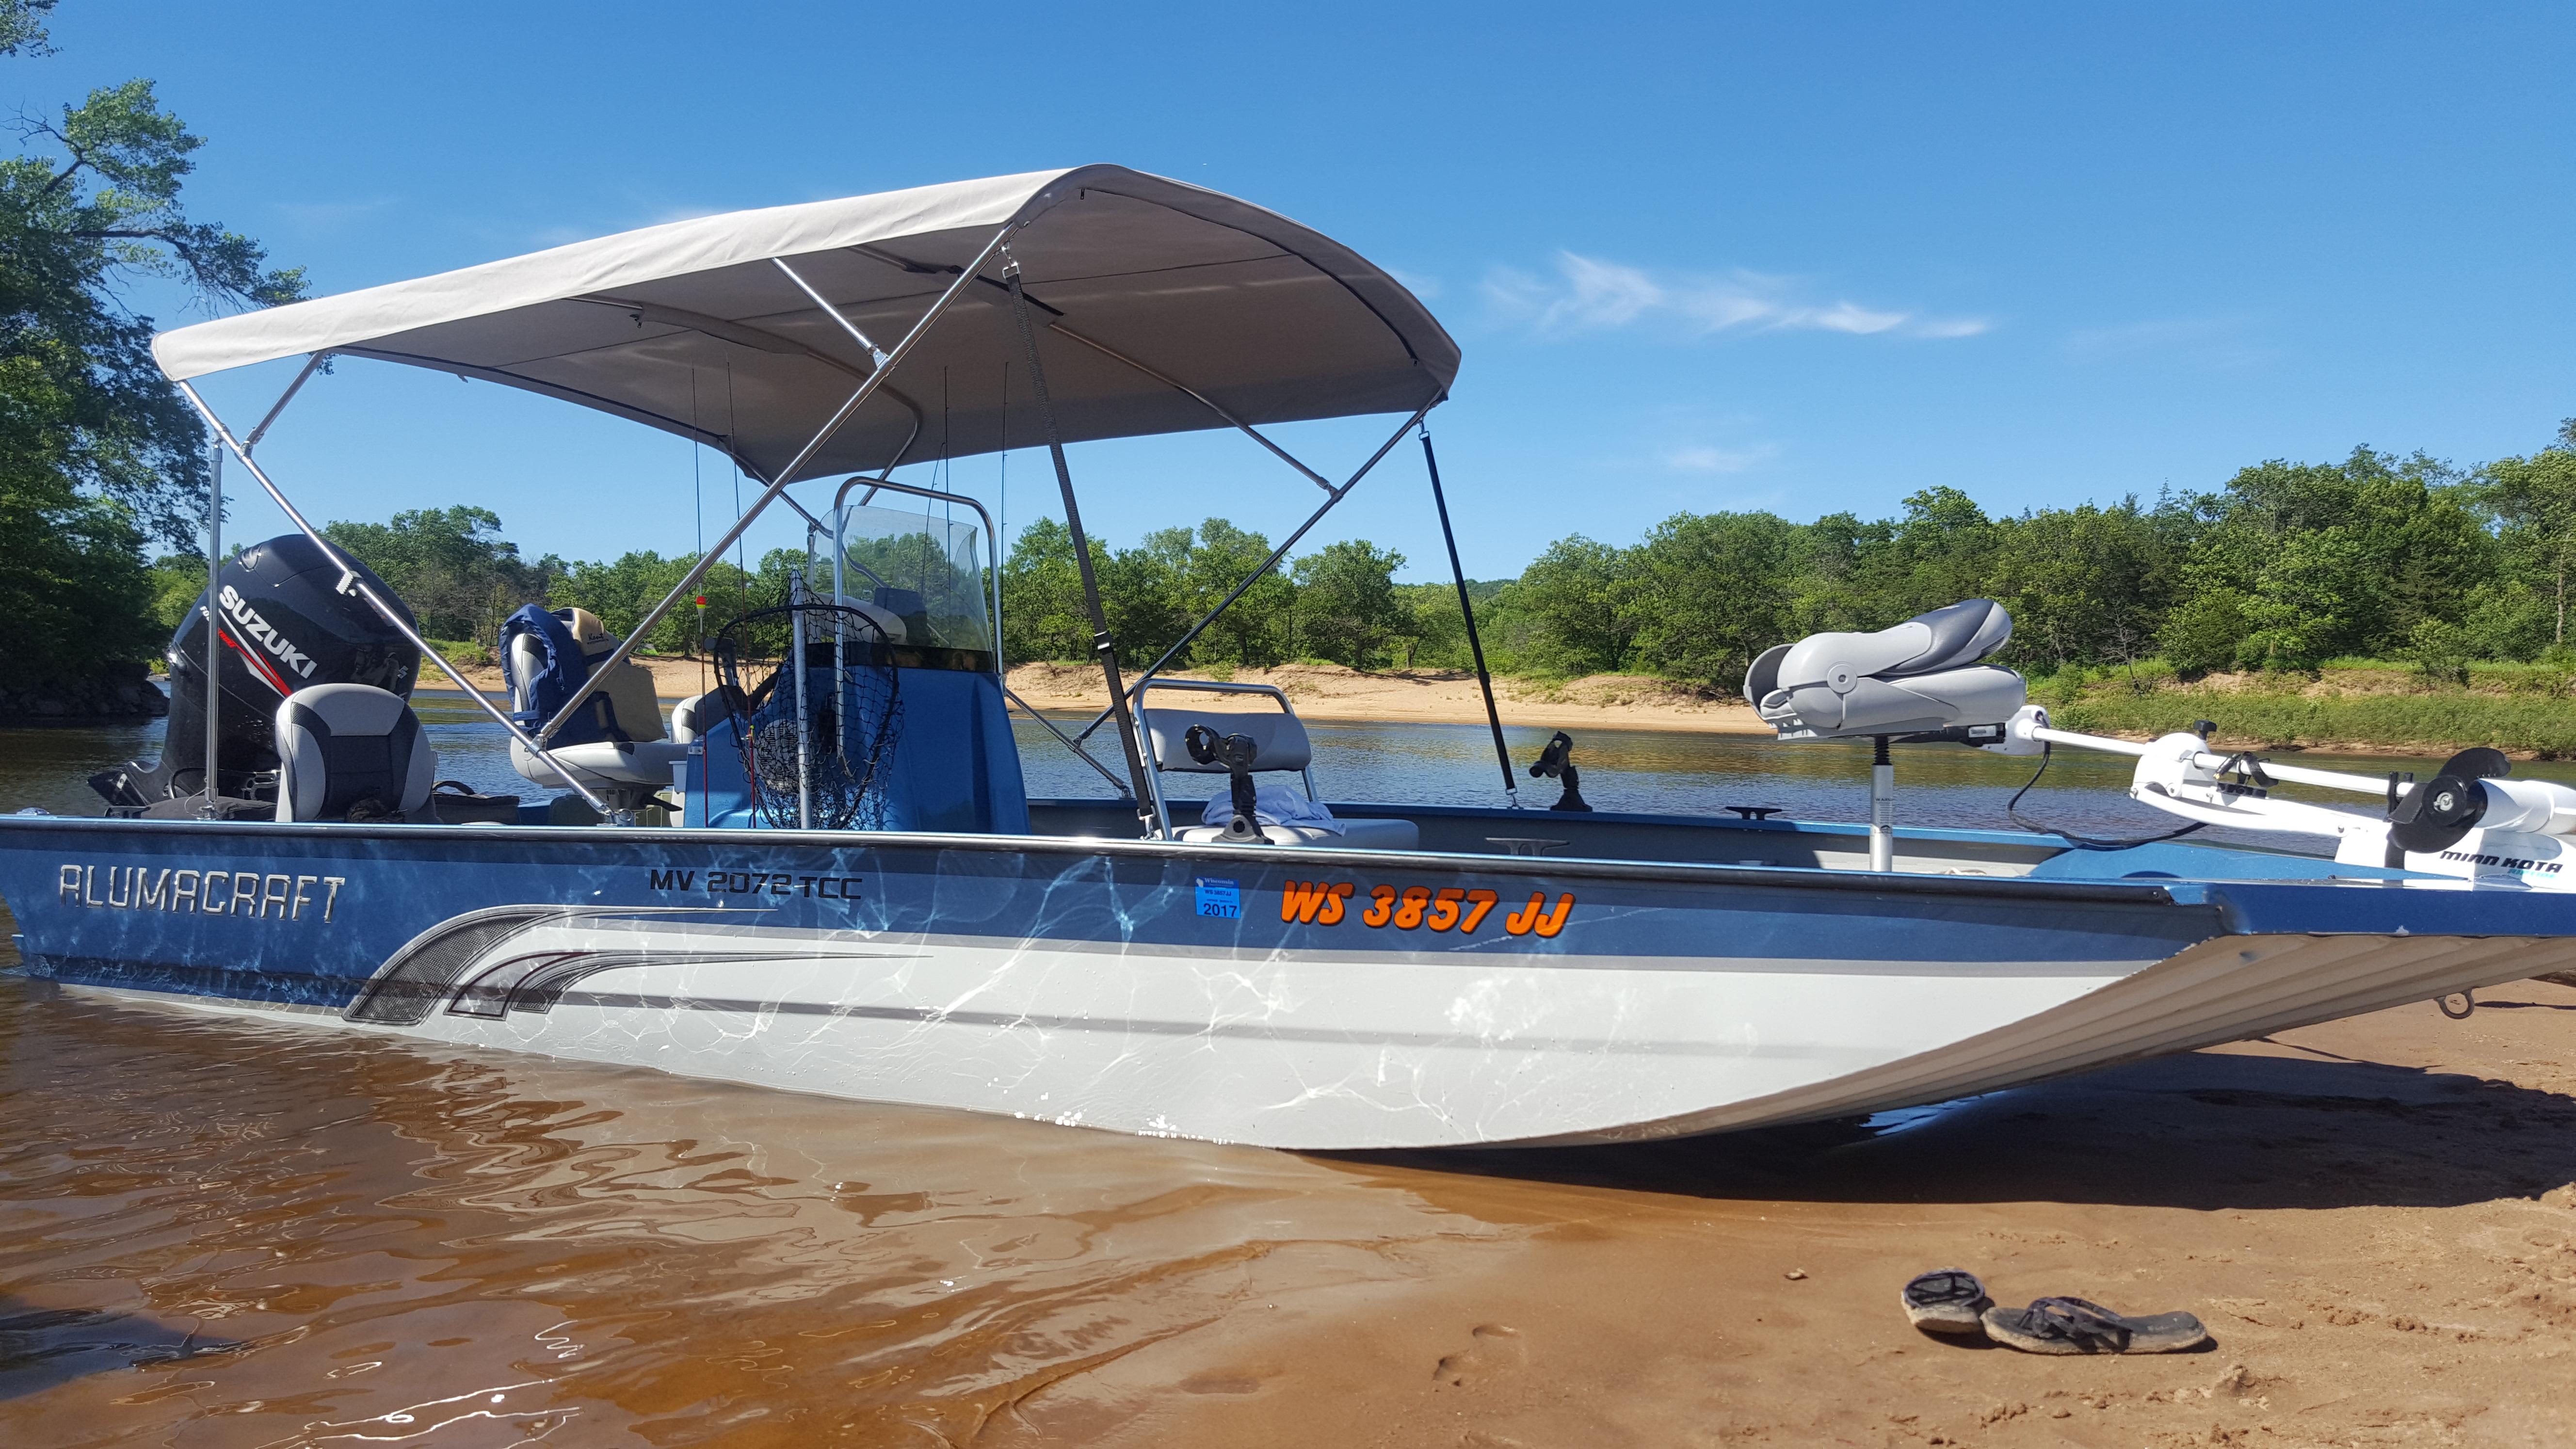 10ft Long Bimini Top with Stainless Frame